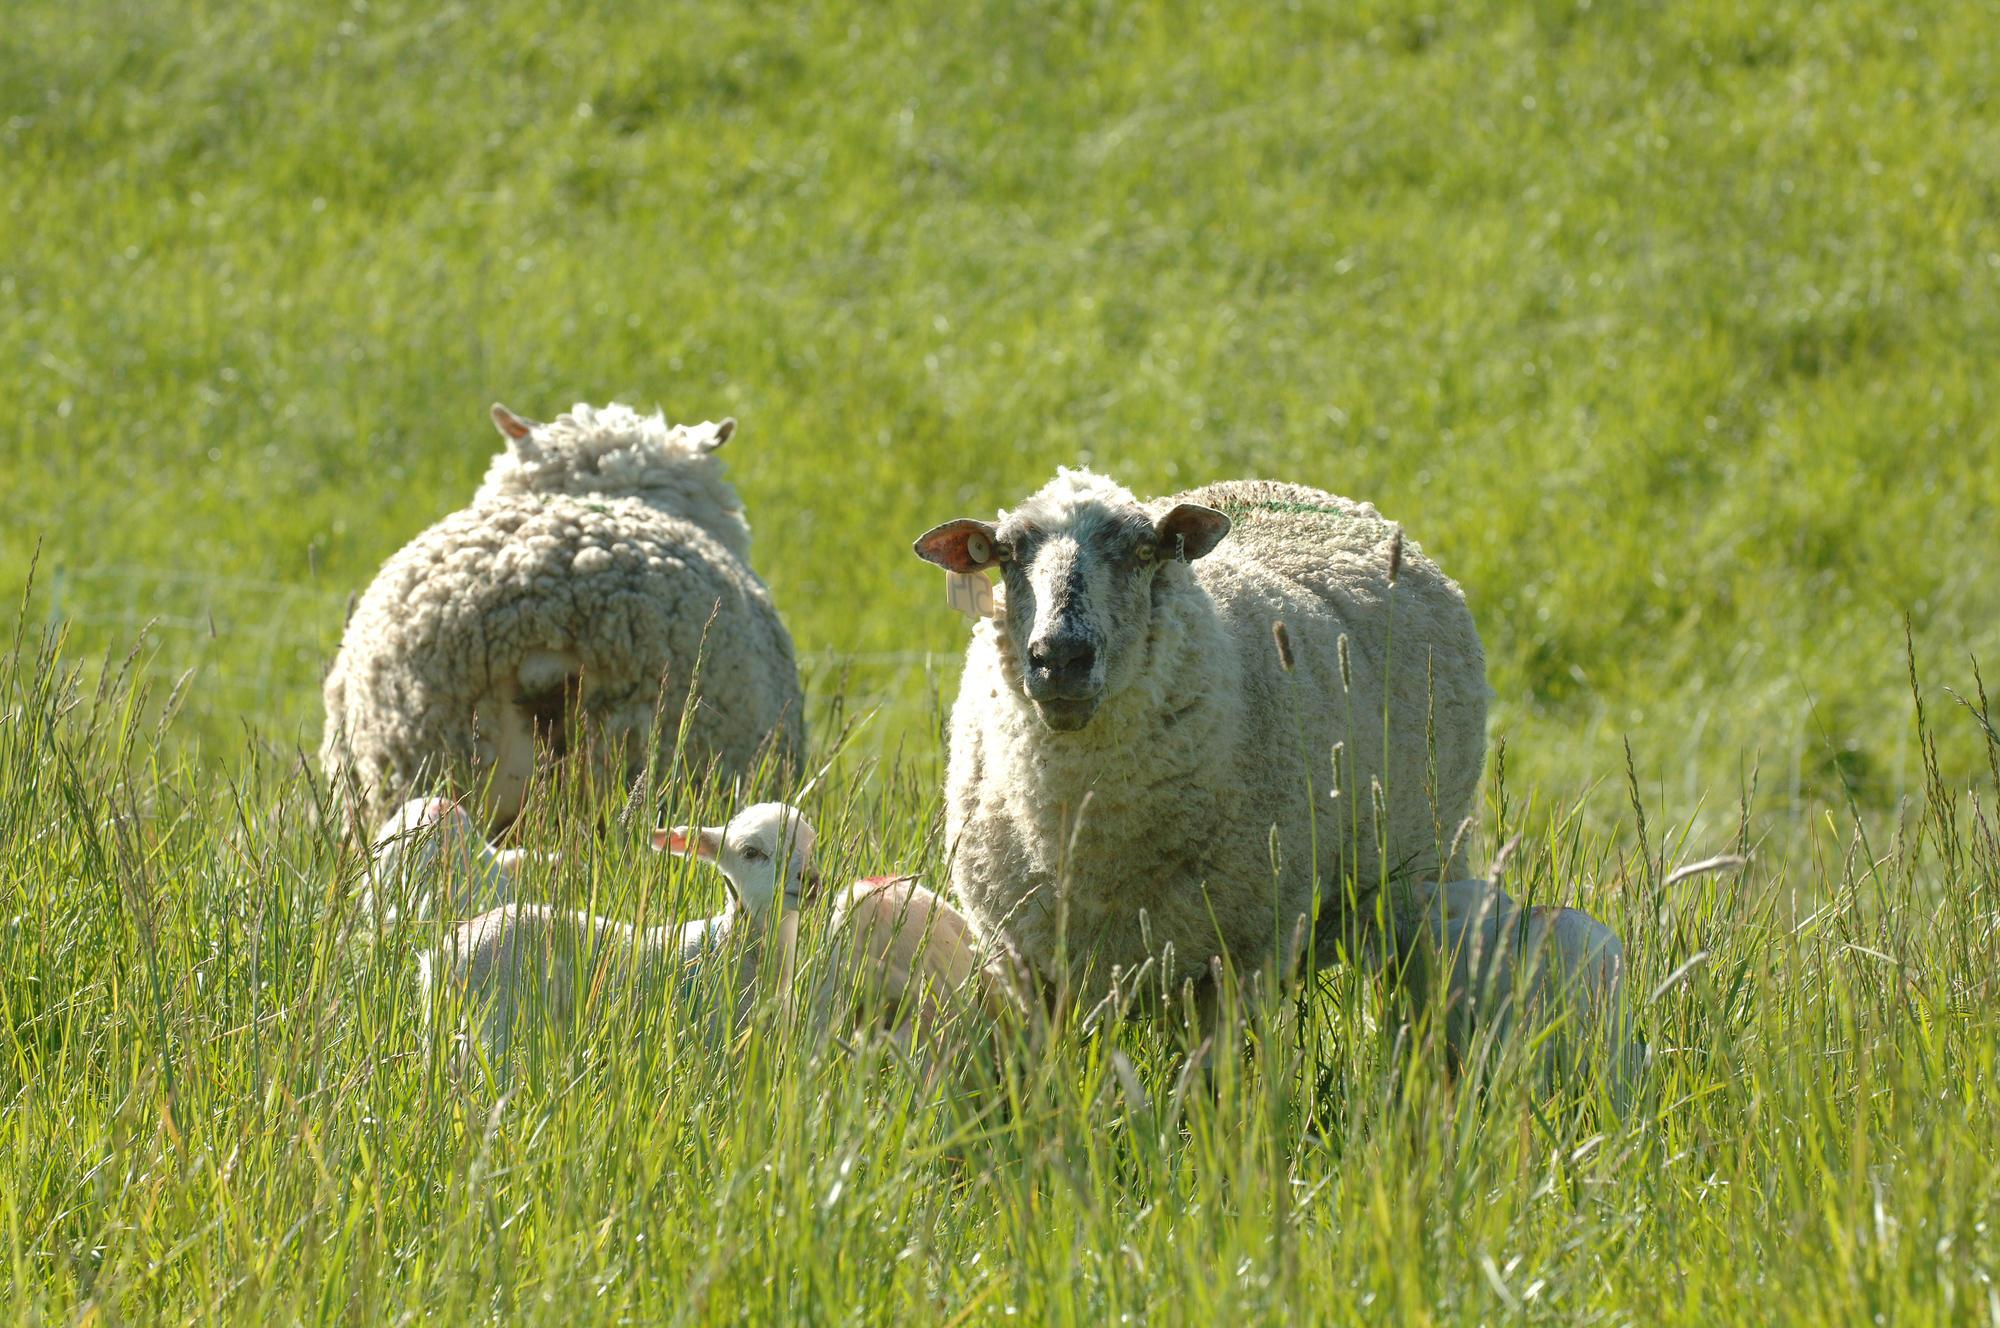 Sheep grazing in a pasture.